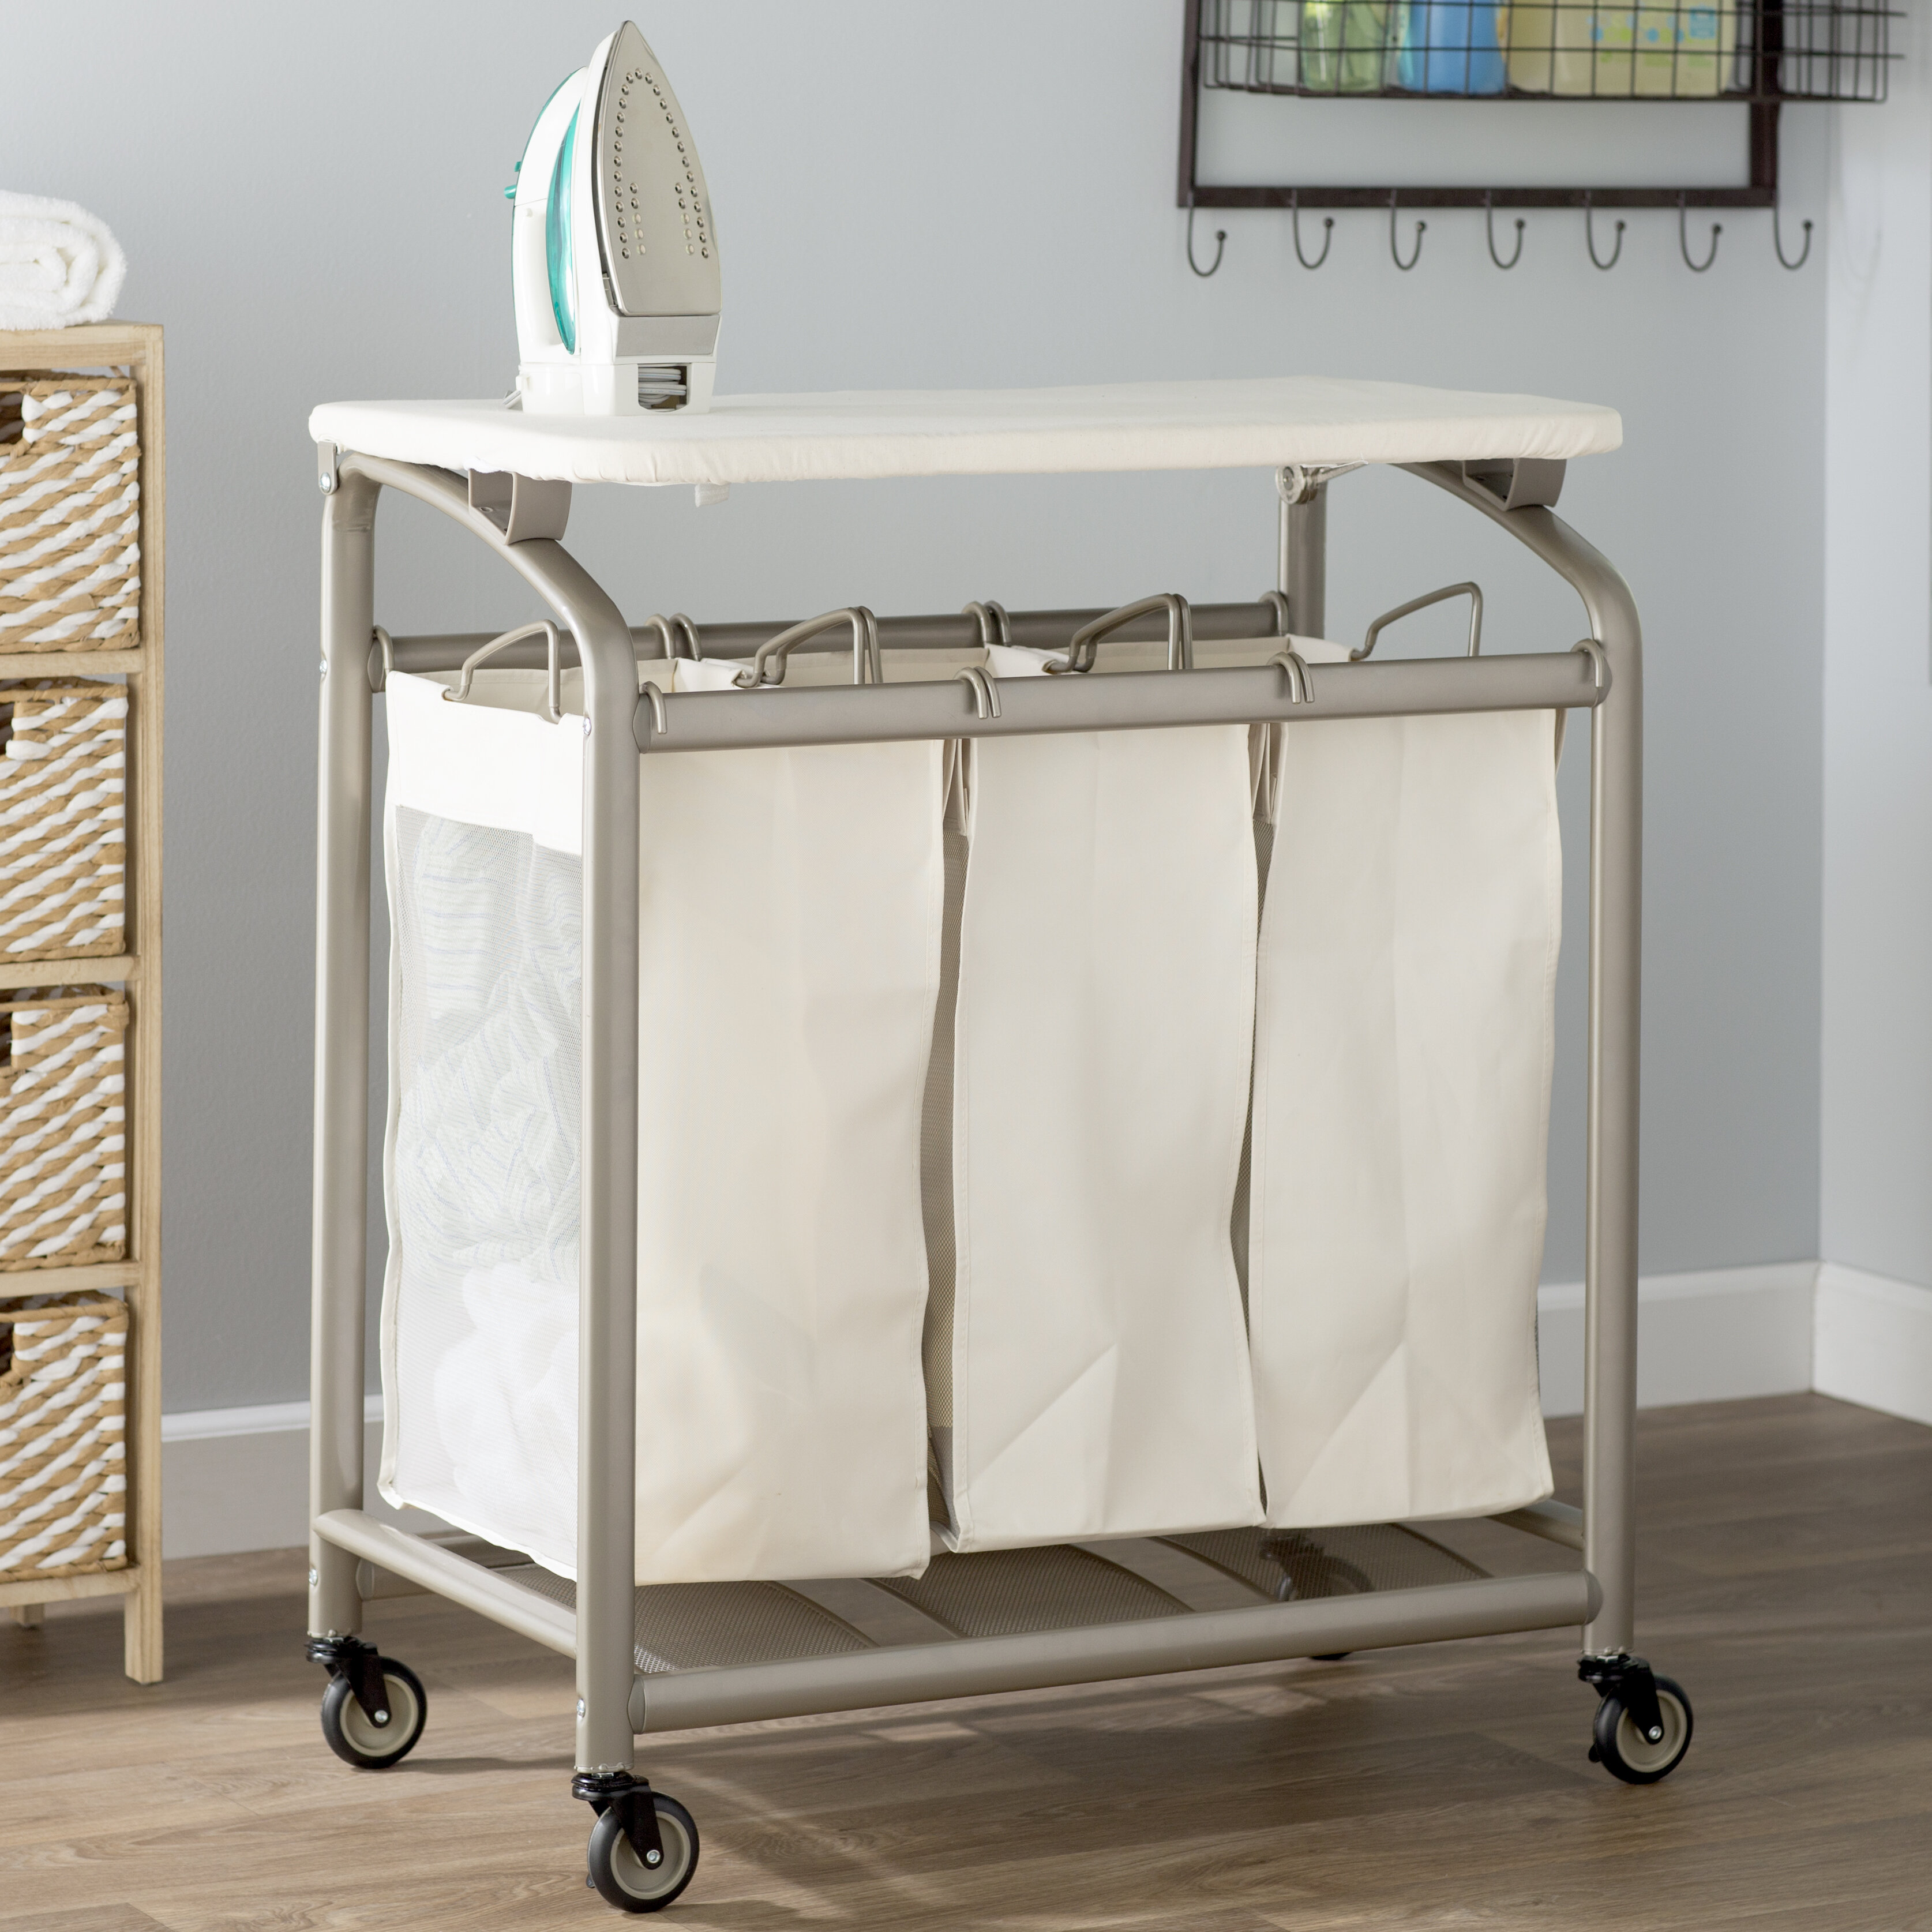 Laundry Sorter Hamper With Folding Table Reviews Wayfair